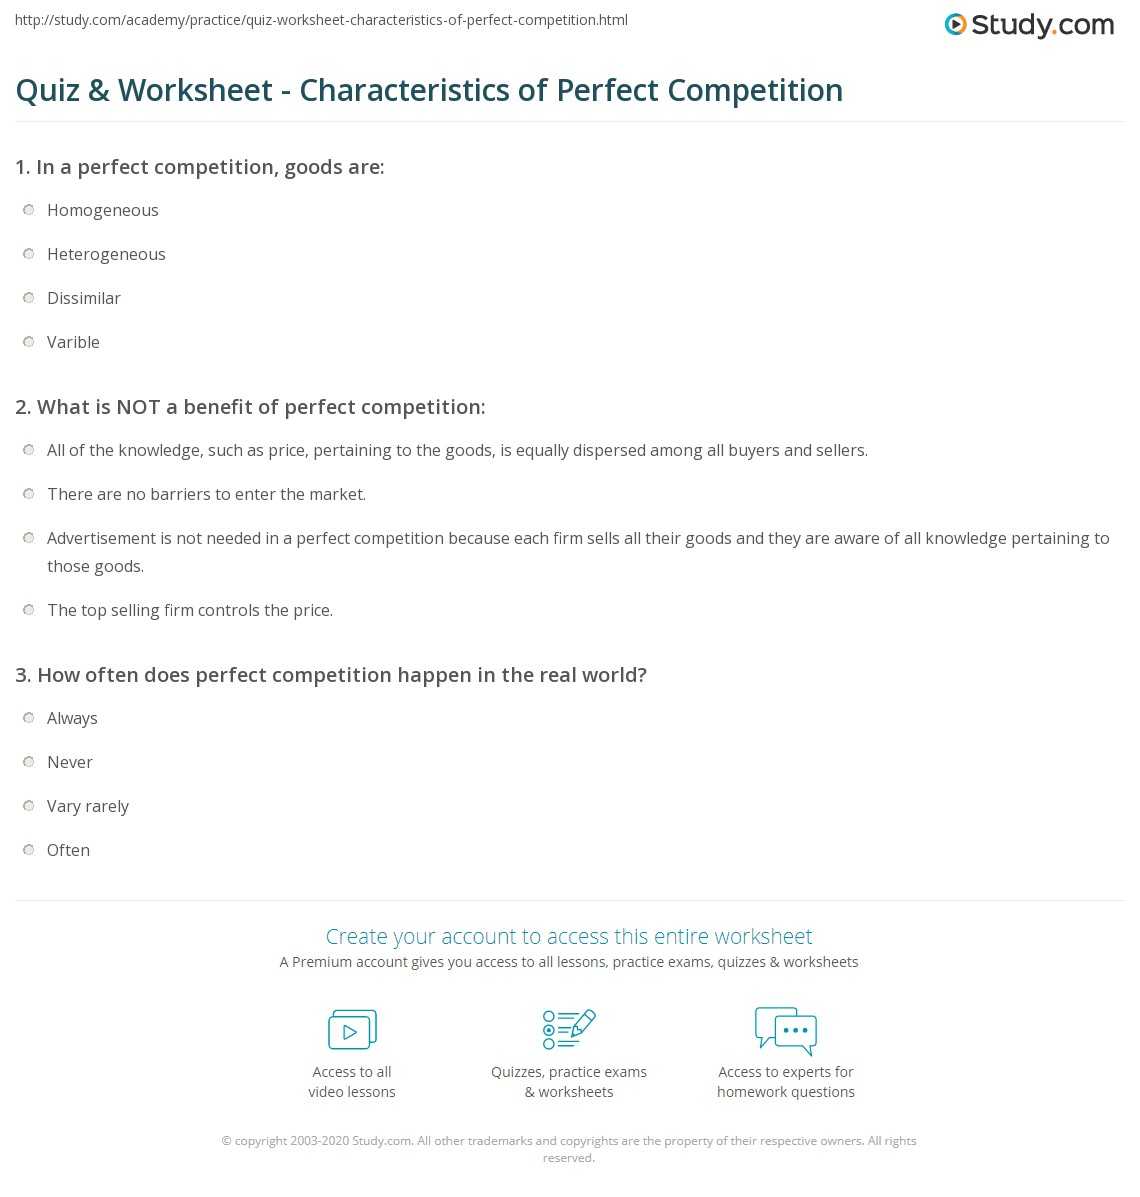 Characteristics of perfect competition pdf